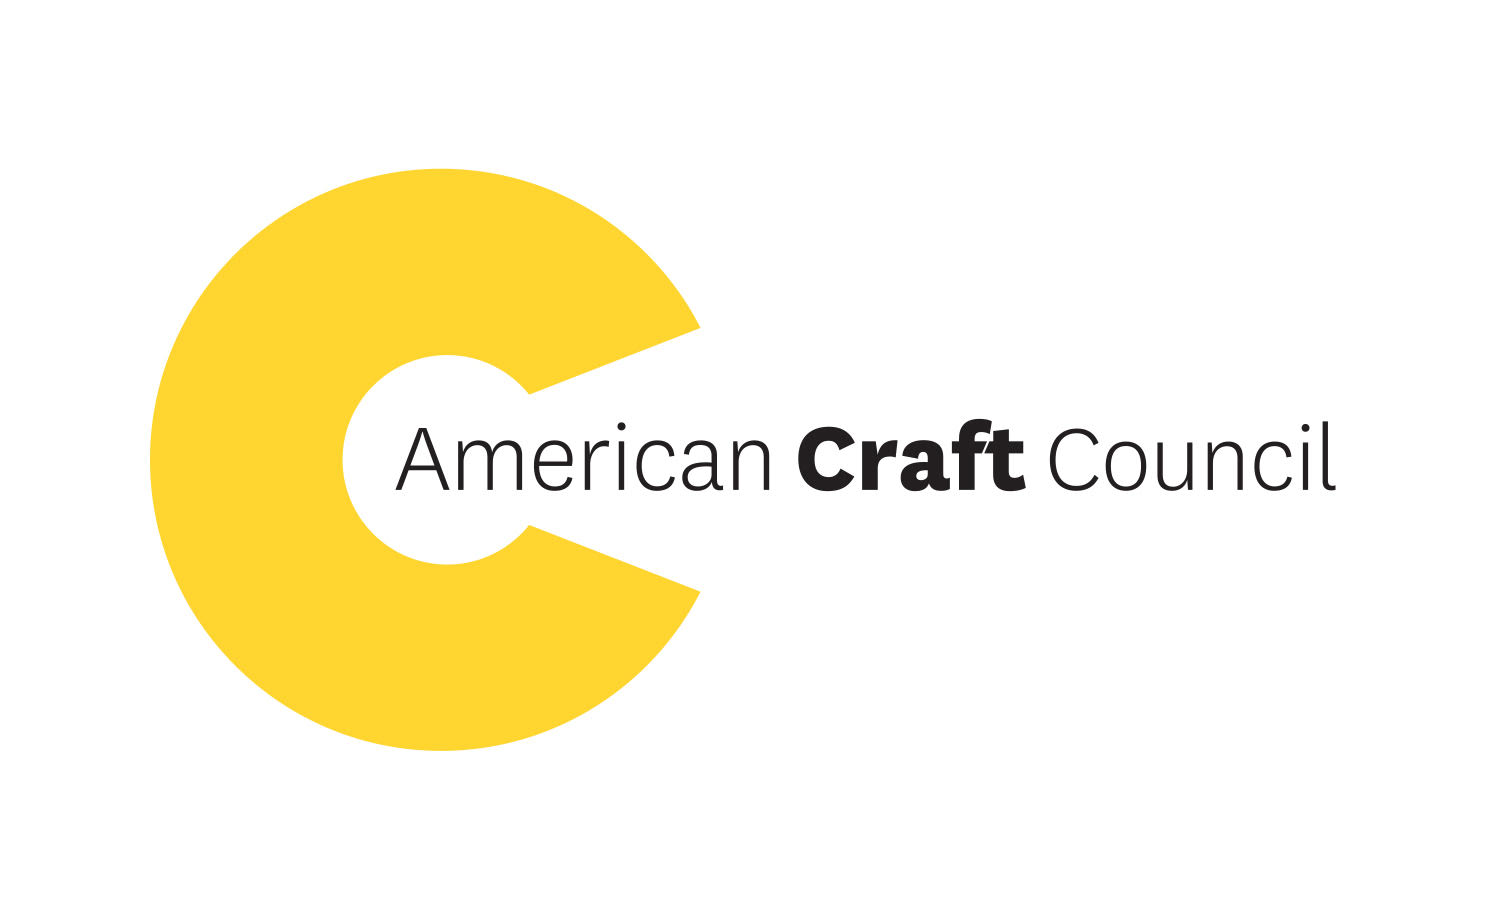 American Craft Council logo